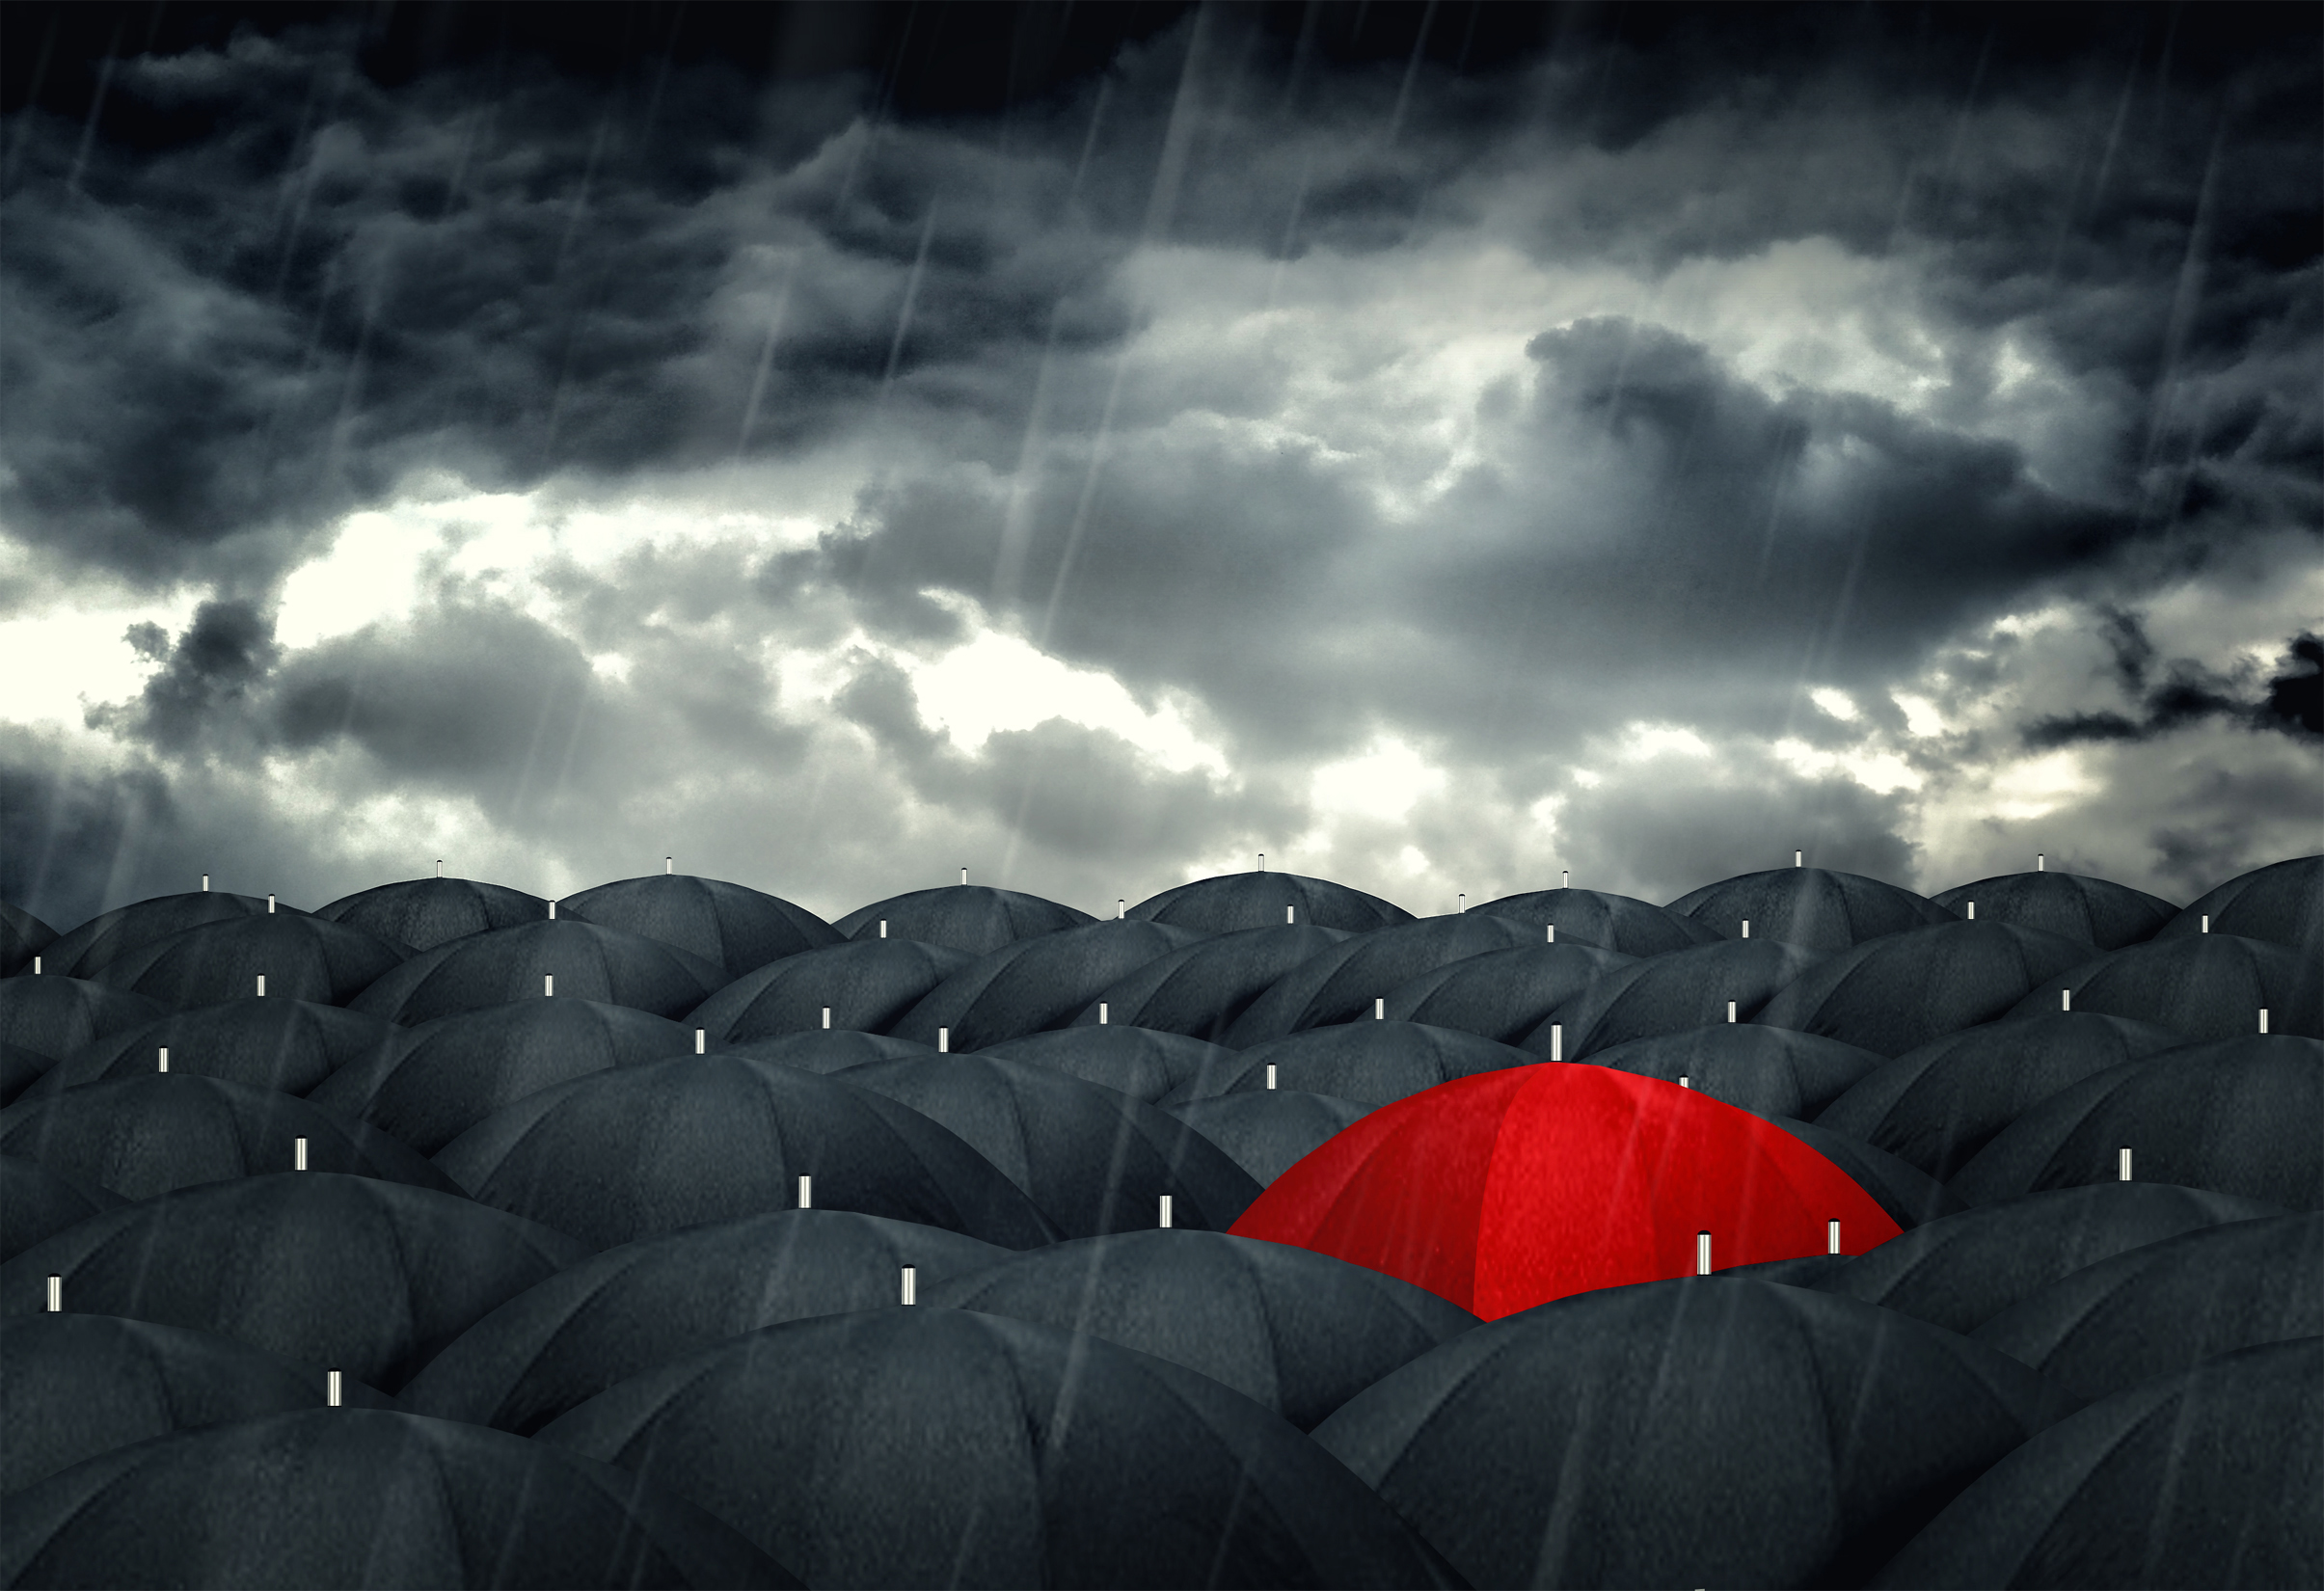 Red umbrella mingling with grey umbrellas - be different concept photo